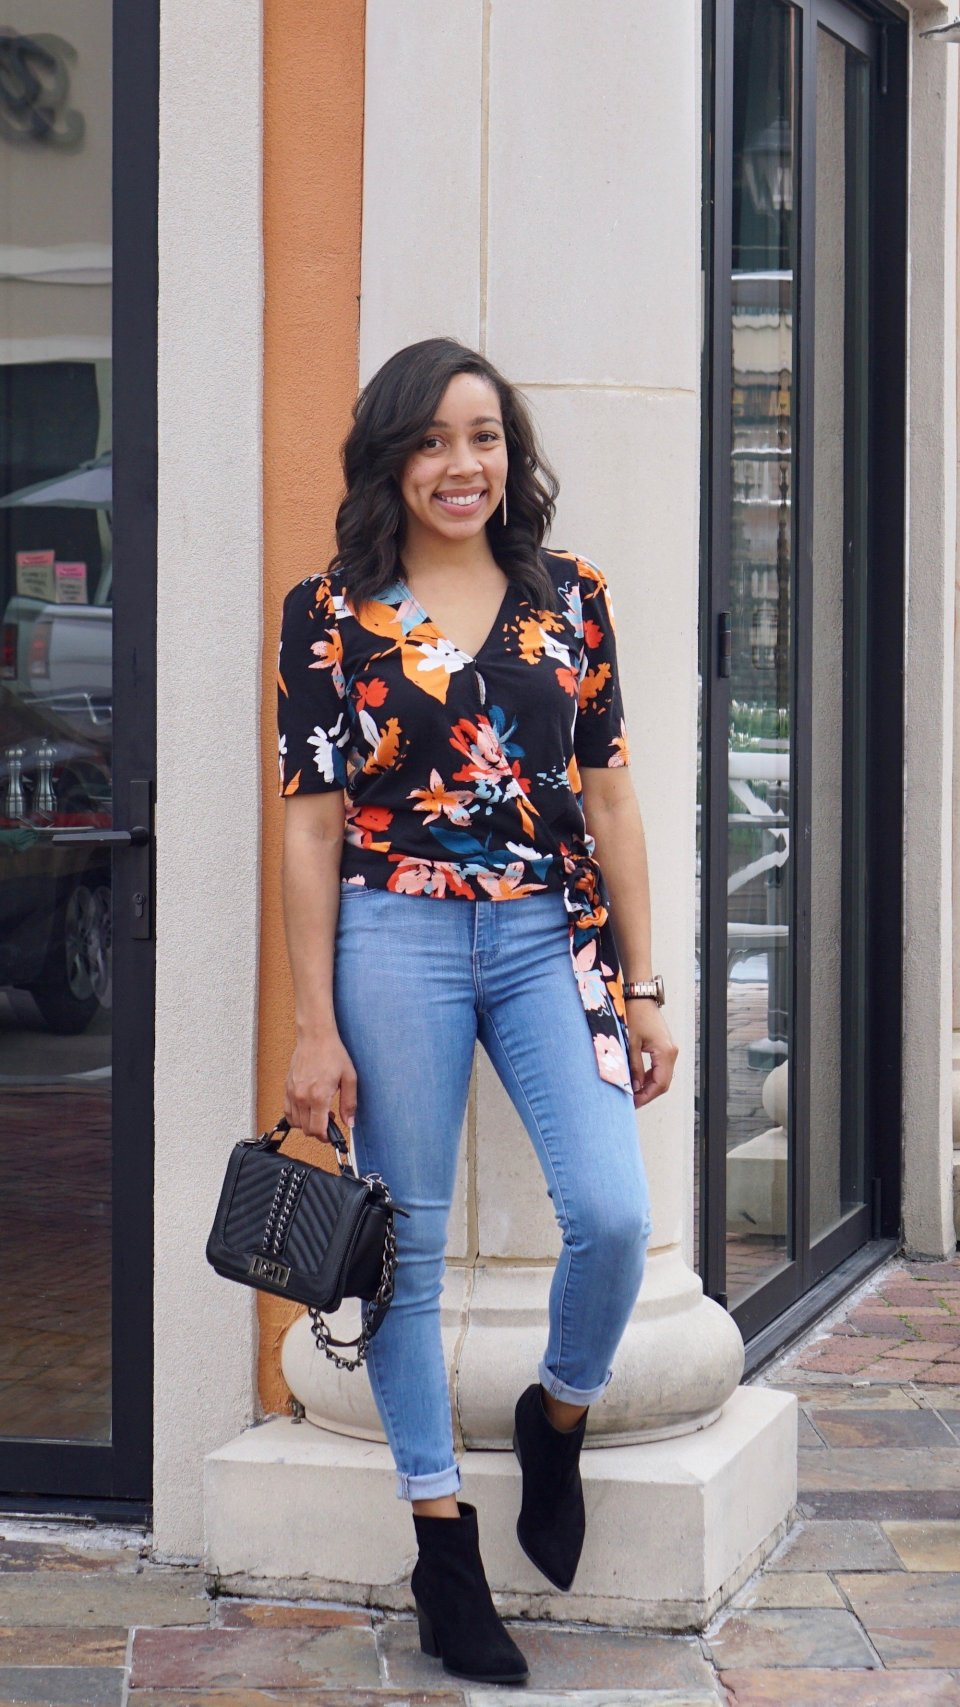 bold floral print top to transition from winter to spring